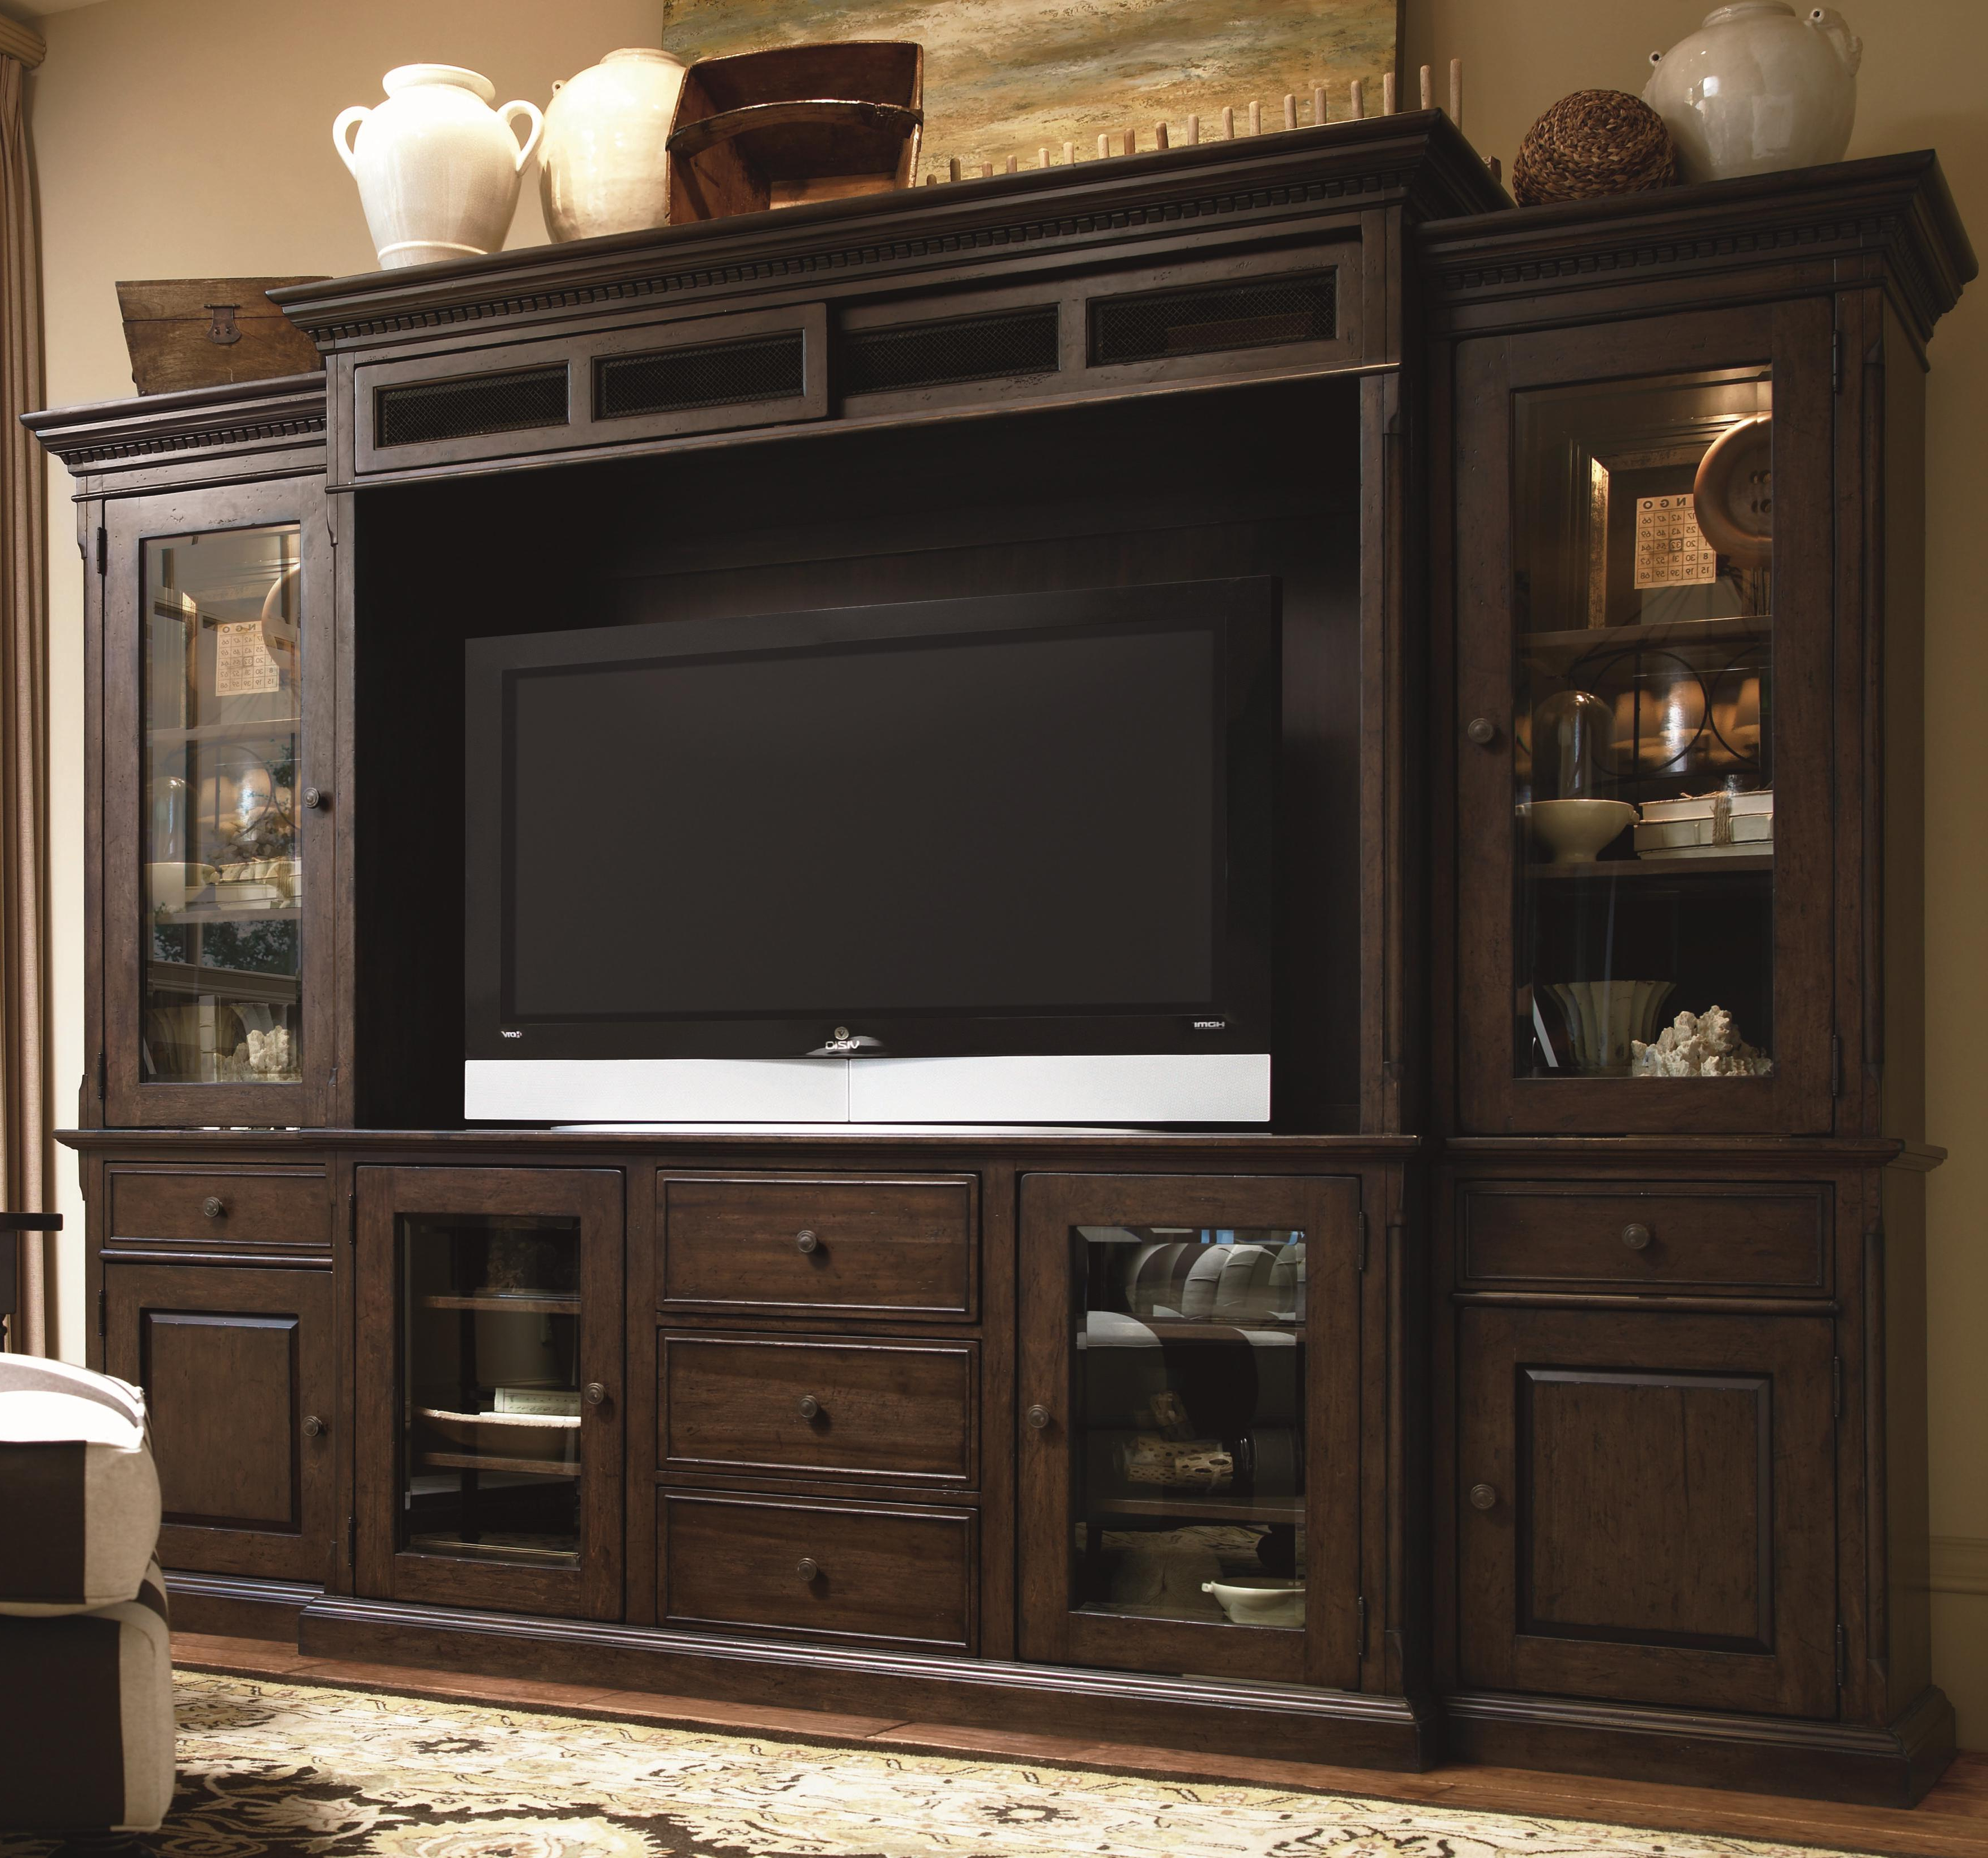 Paula Deenuniversal Down Home 193966He Entertainment Console Within Most Recent Tv Entertainment Wall Units (Gallery 4 of 20)